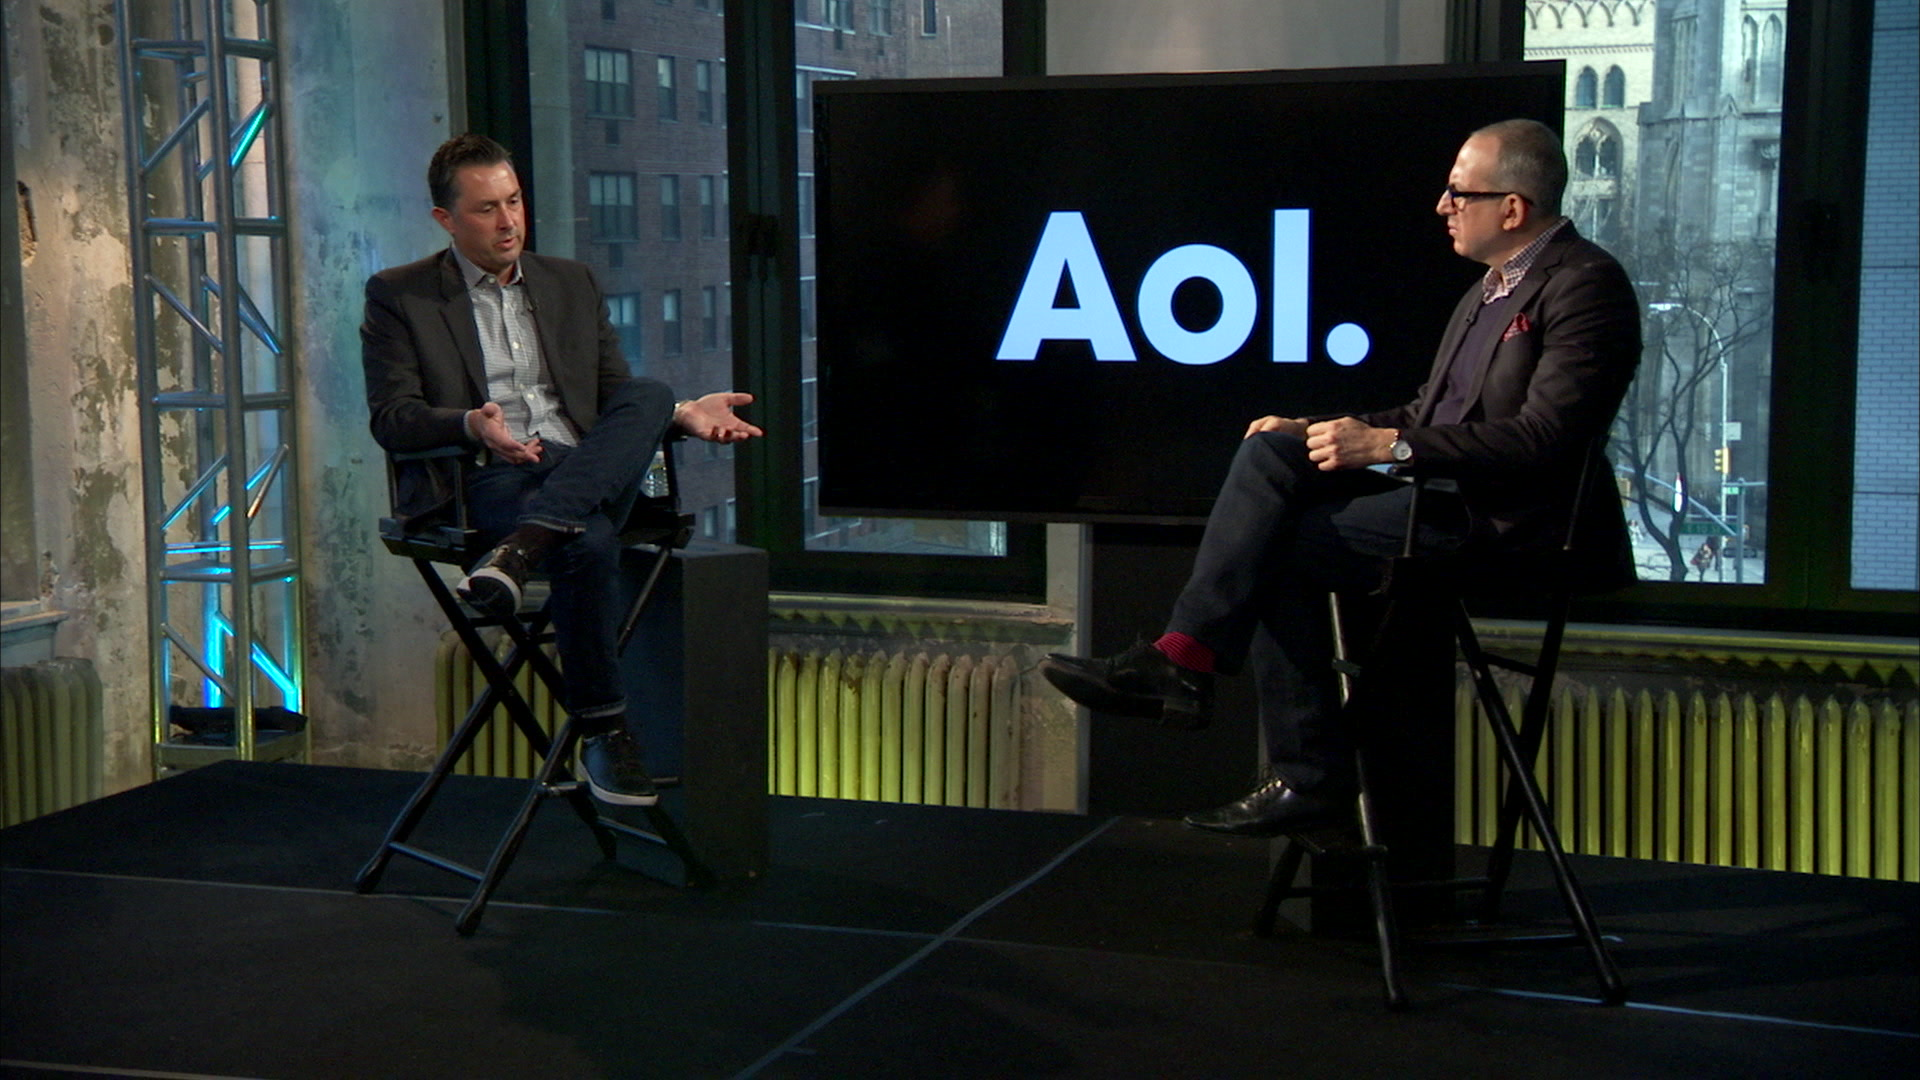 AOL and Effie's Present: Jack Talk 2016 with Scott Symonds of AKQA Media